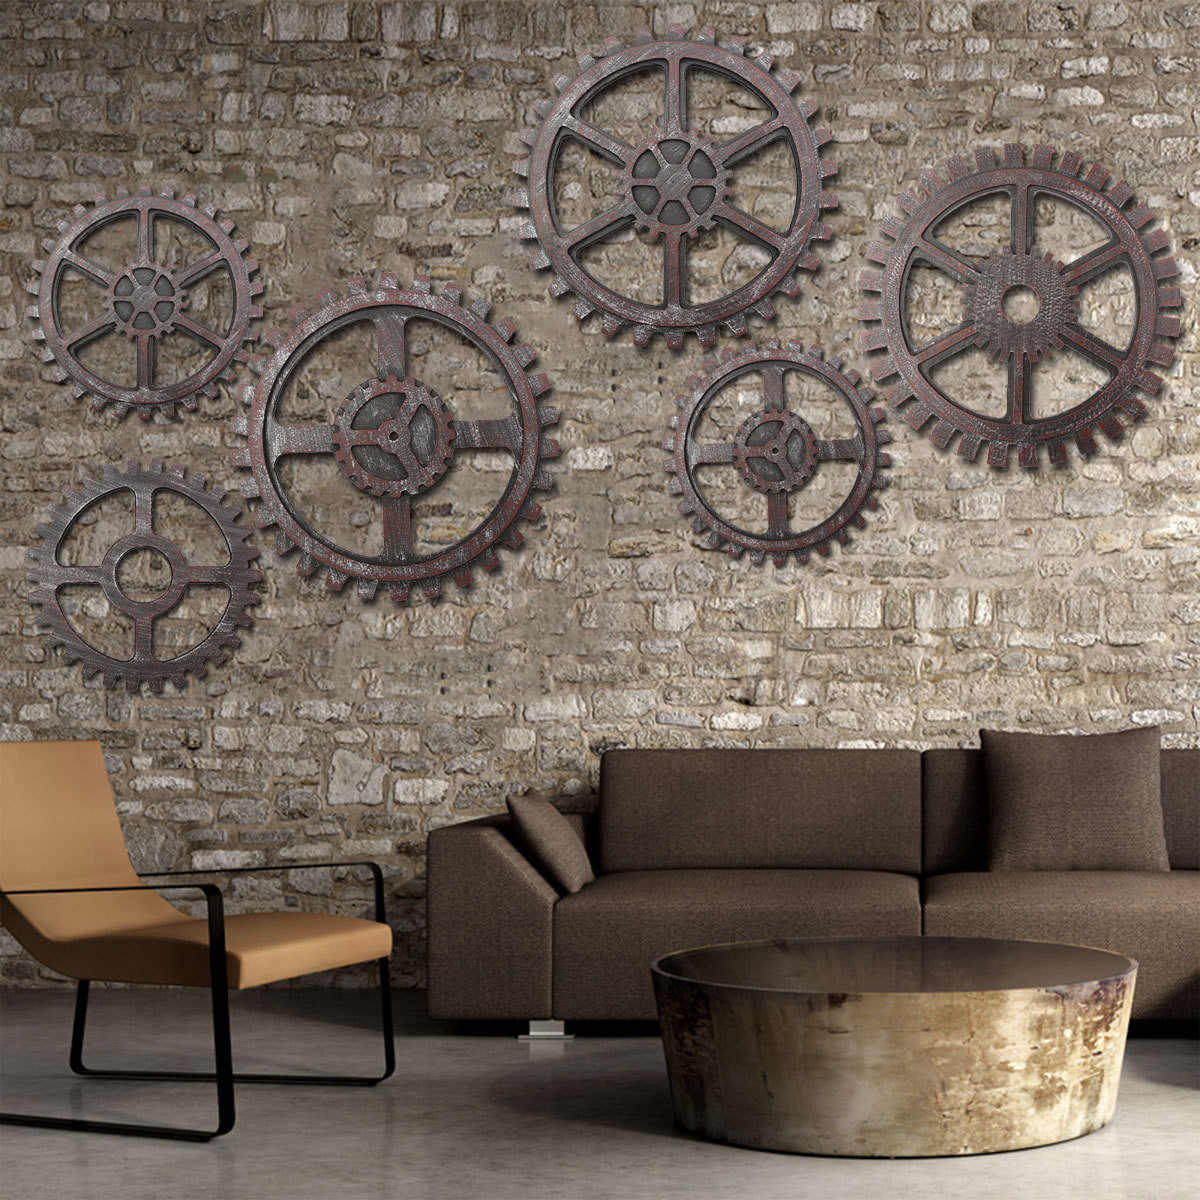 Best ideas about Industrial Wall Art . Save or Pin Wooden Gear Wall Art Industrial Antique Vintage Chic Now.